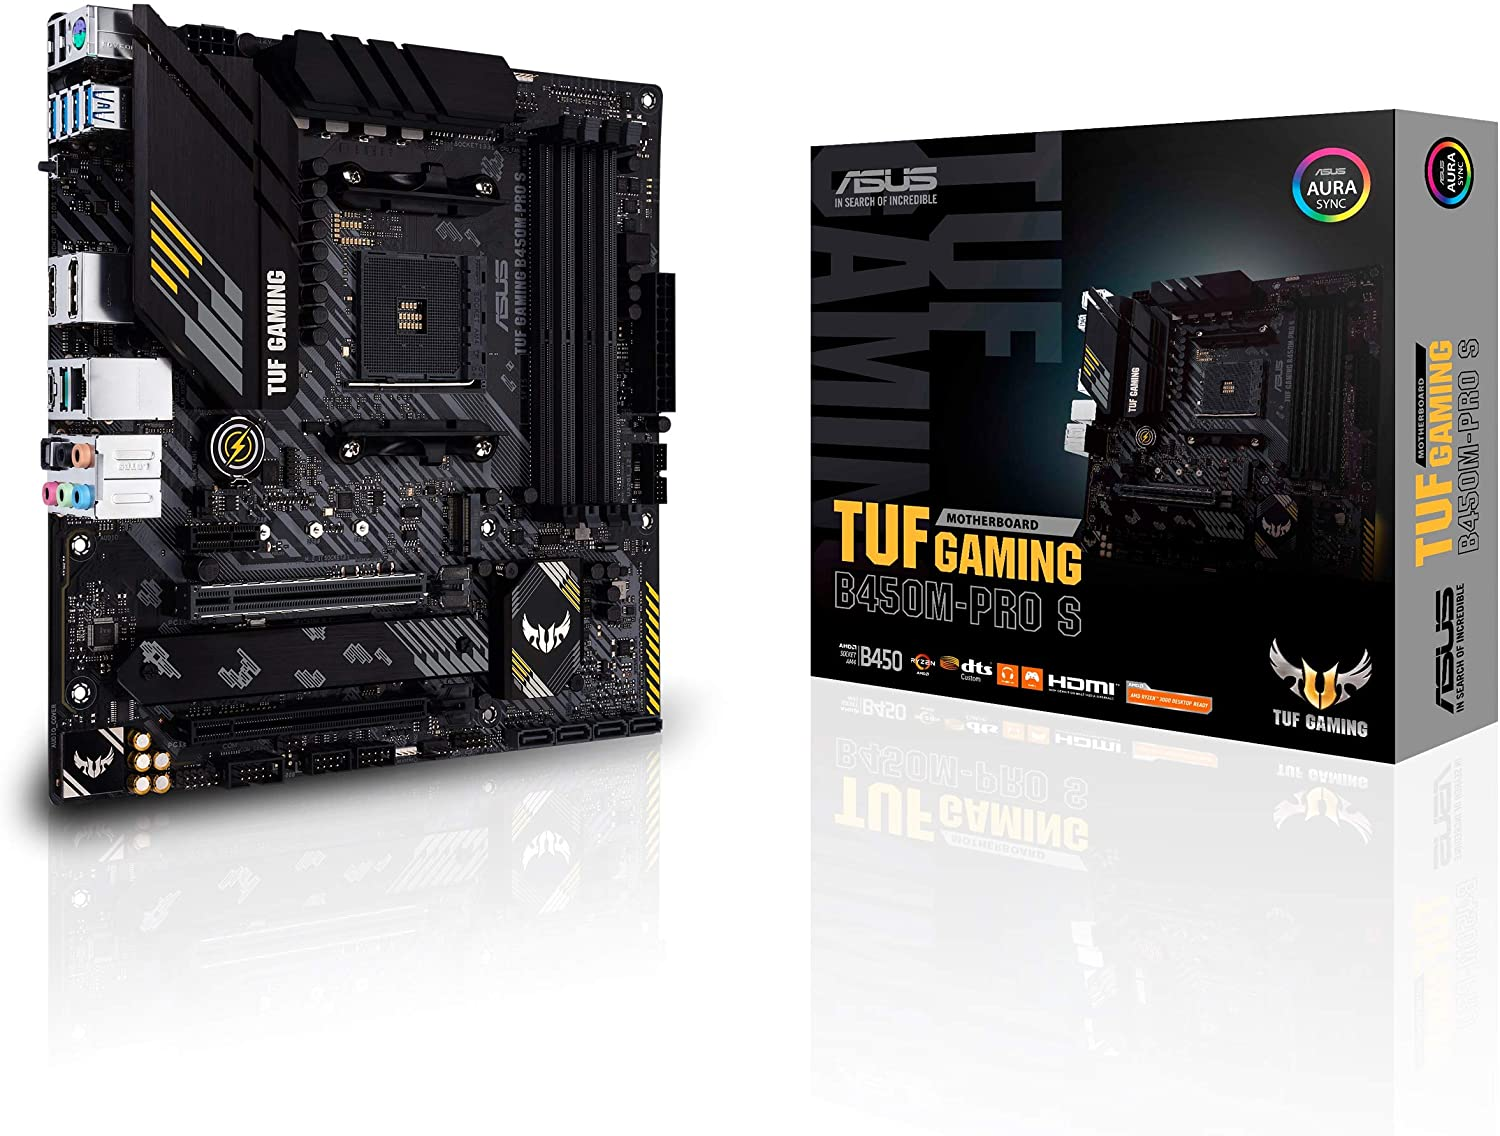 ASUS TUF Gaming B450M-PRO S AMD AM4 (3rd Gen Ryzen Micro ATX Gaming Motherboard (8+2 Power Stages, 2.5Gb LAN, BIOS Flashback, AI Noise-Canceling Mic, USB 3.2 Gen 2 Type-A and Type-C, Aura Sync RGB)